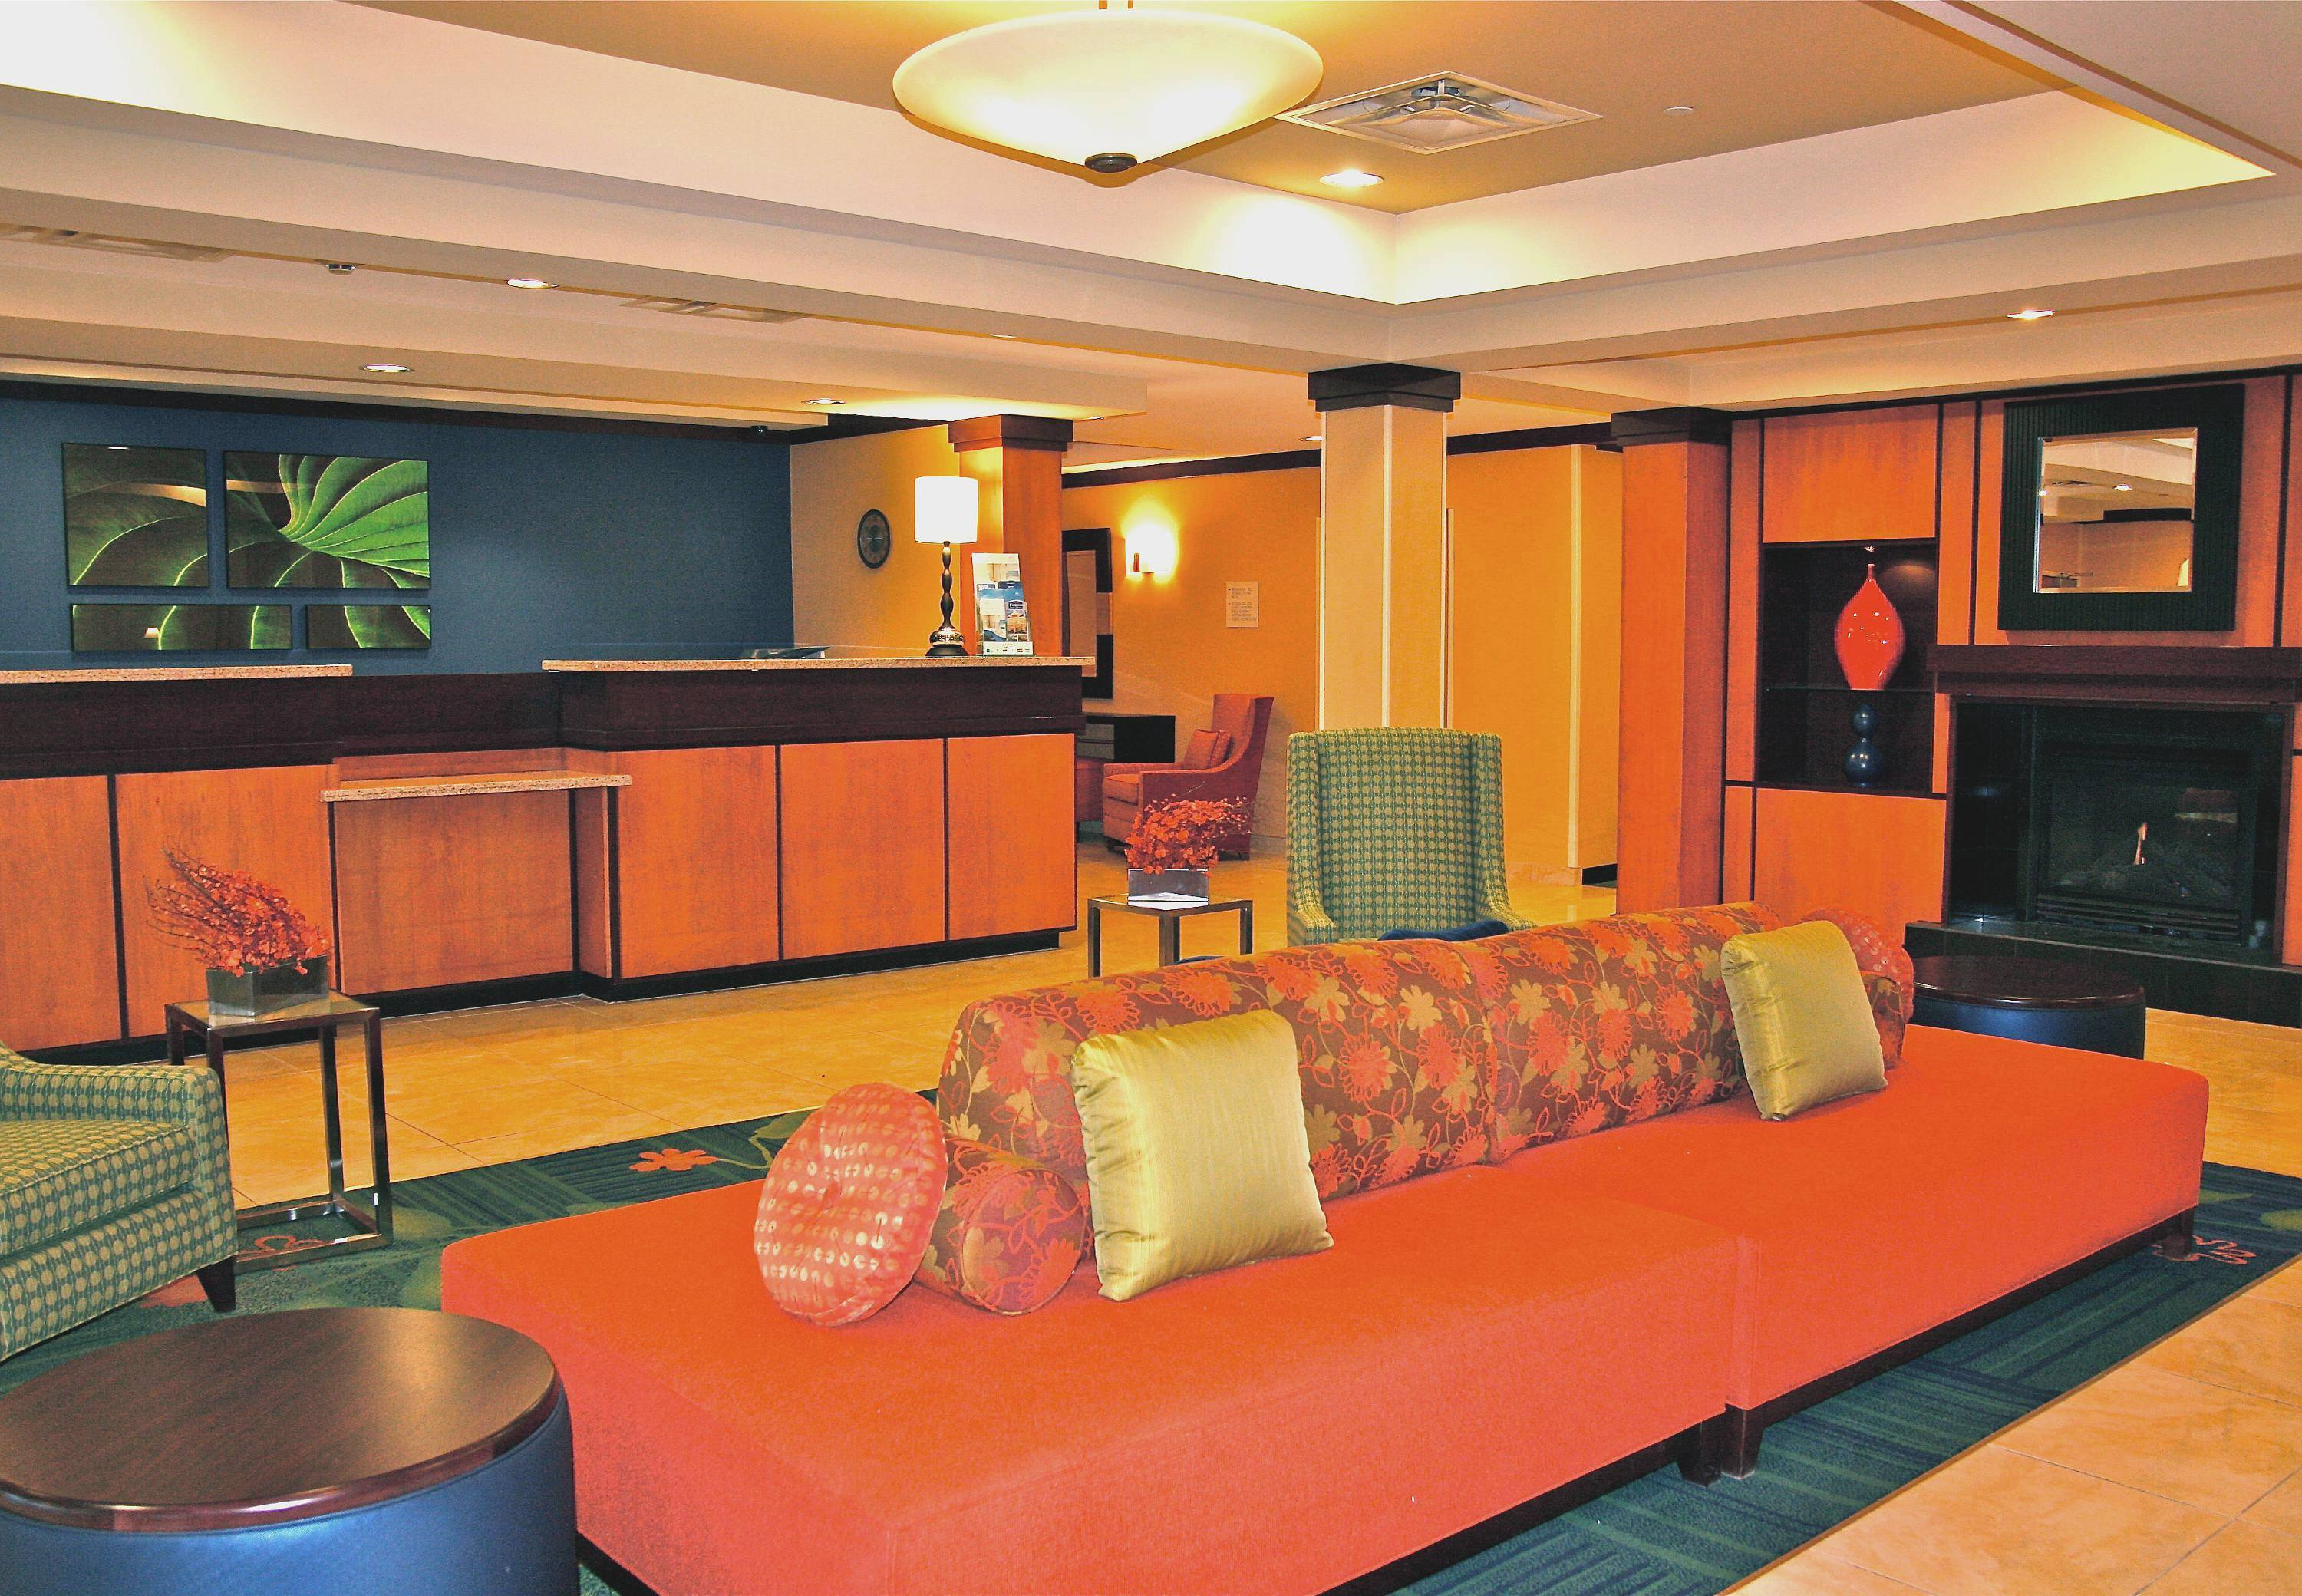 Fairfield Inn & Suites by Marriott Youngstown Austintown image 5